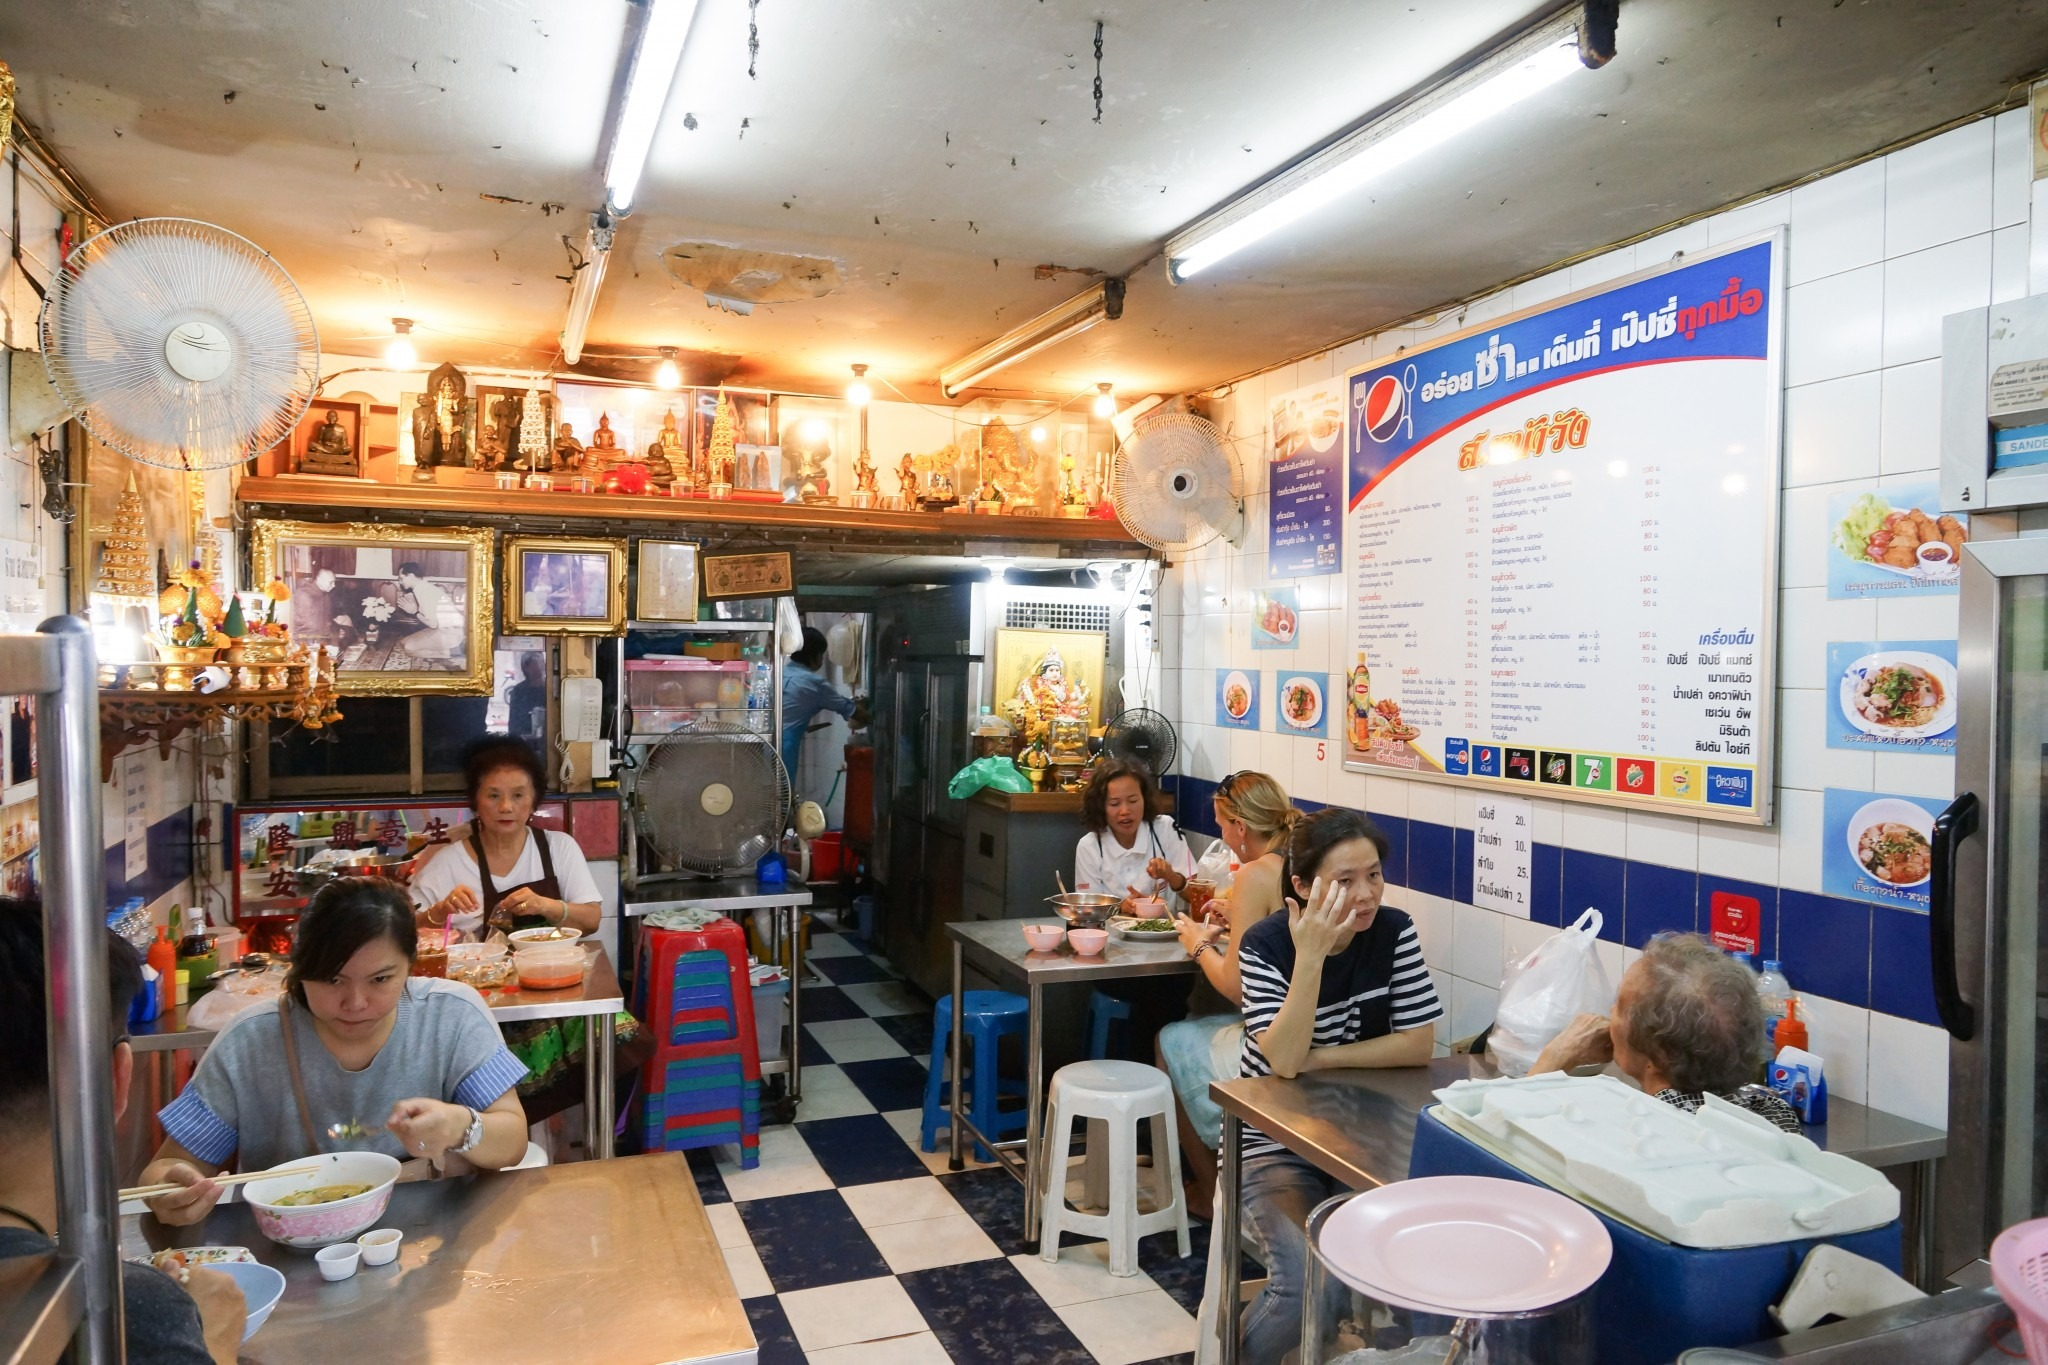 interior of a small restaurant in Bangkok